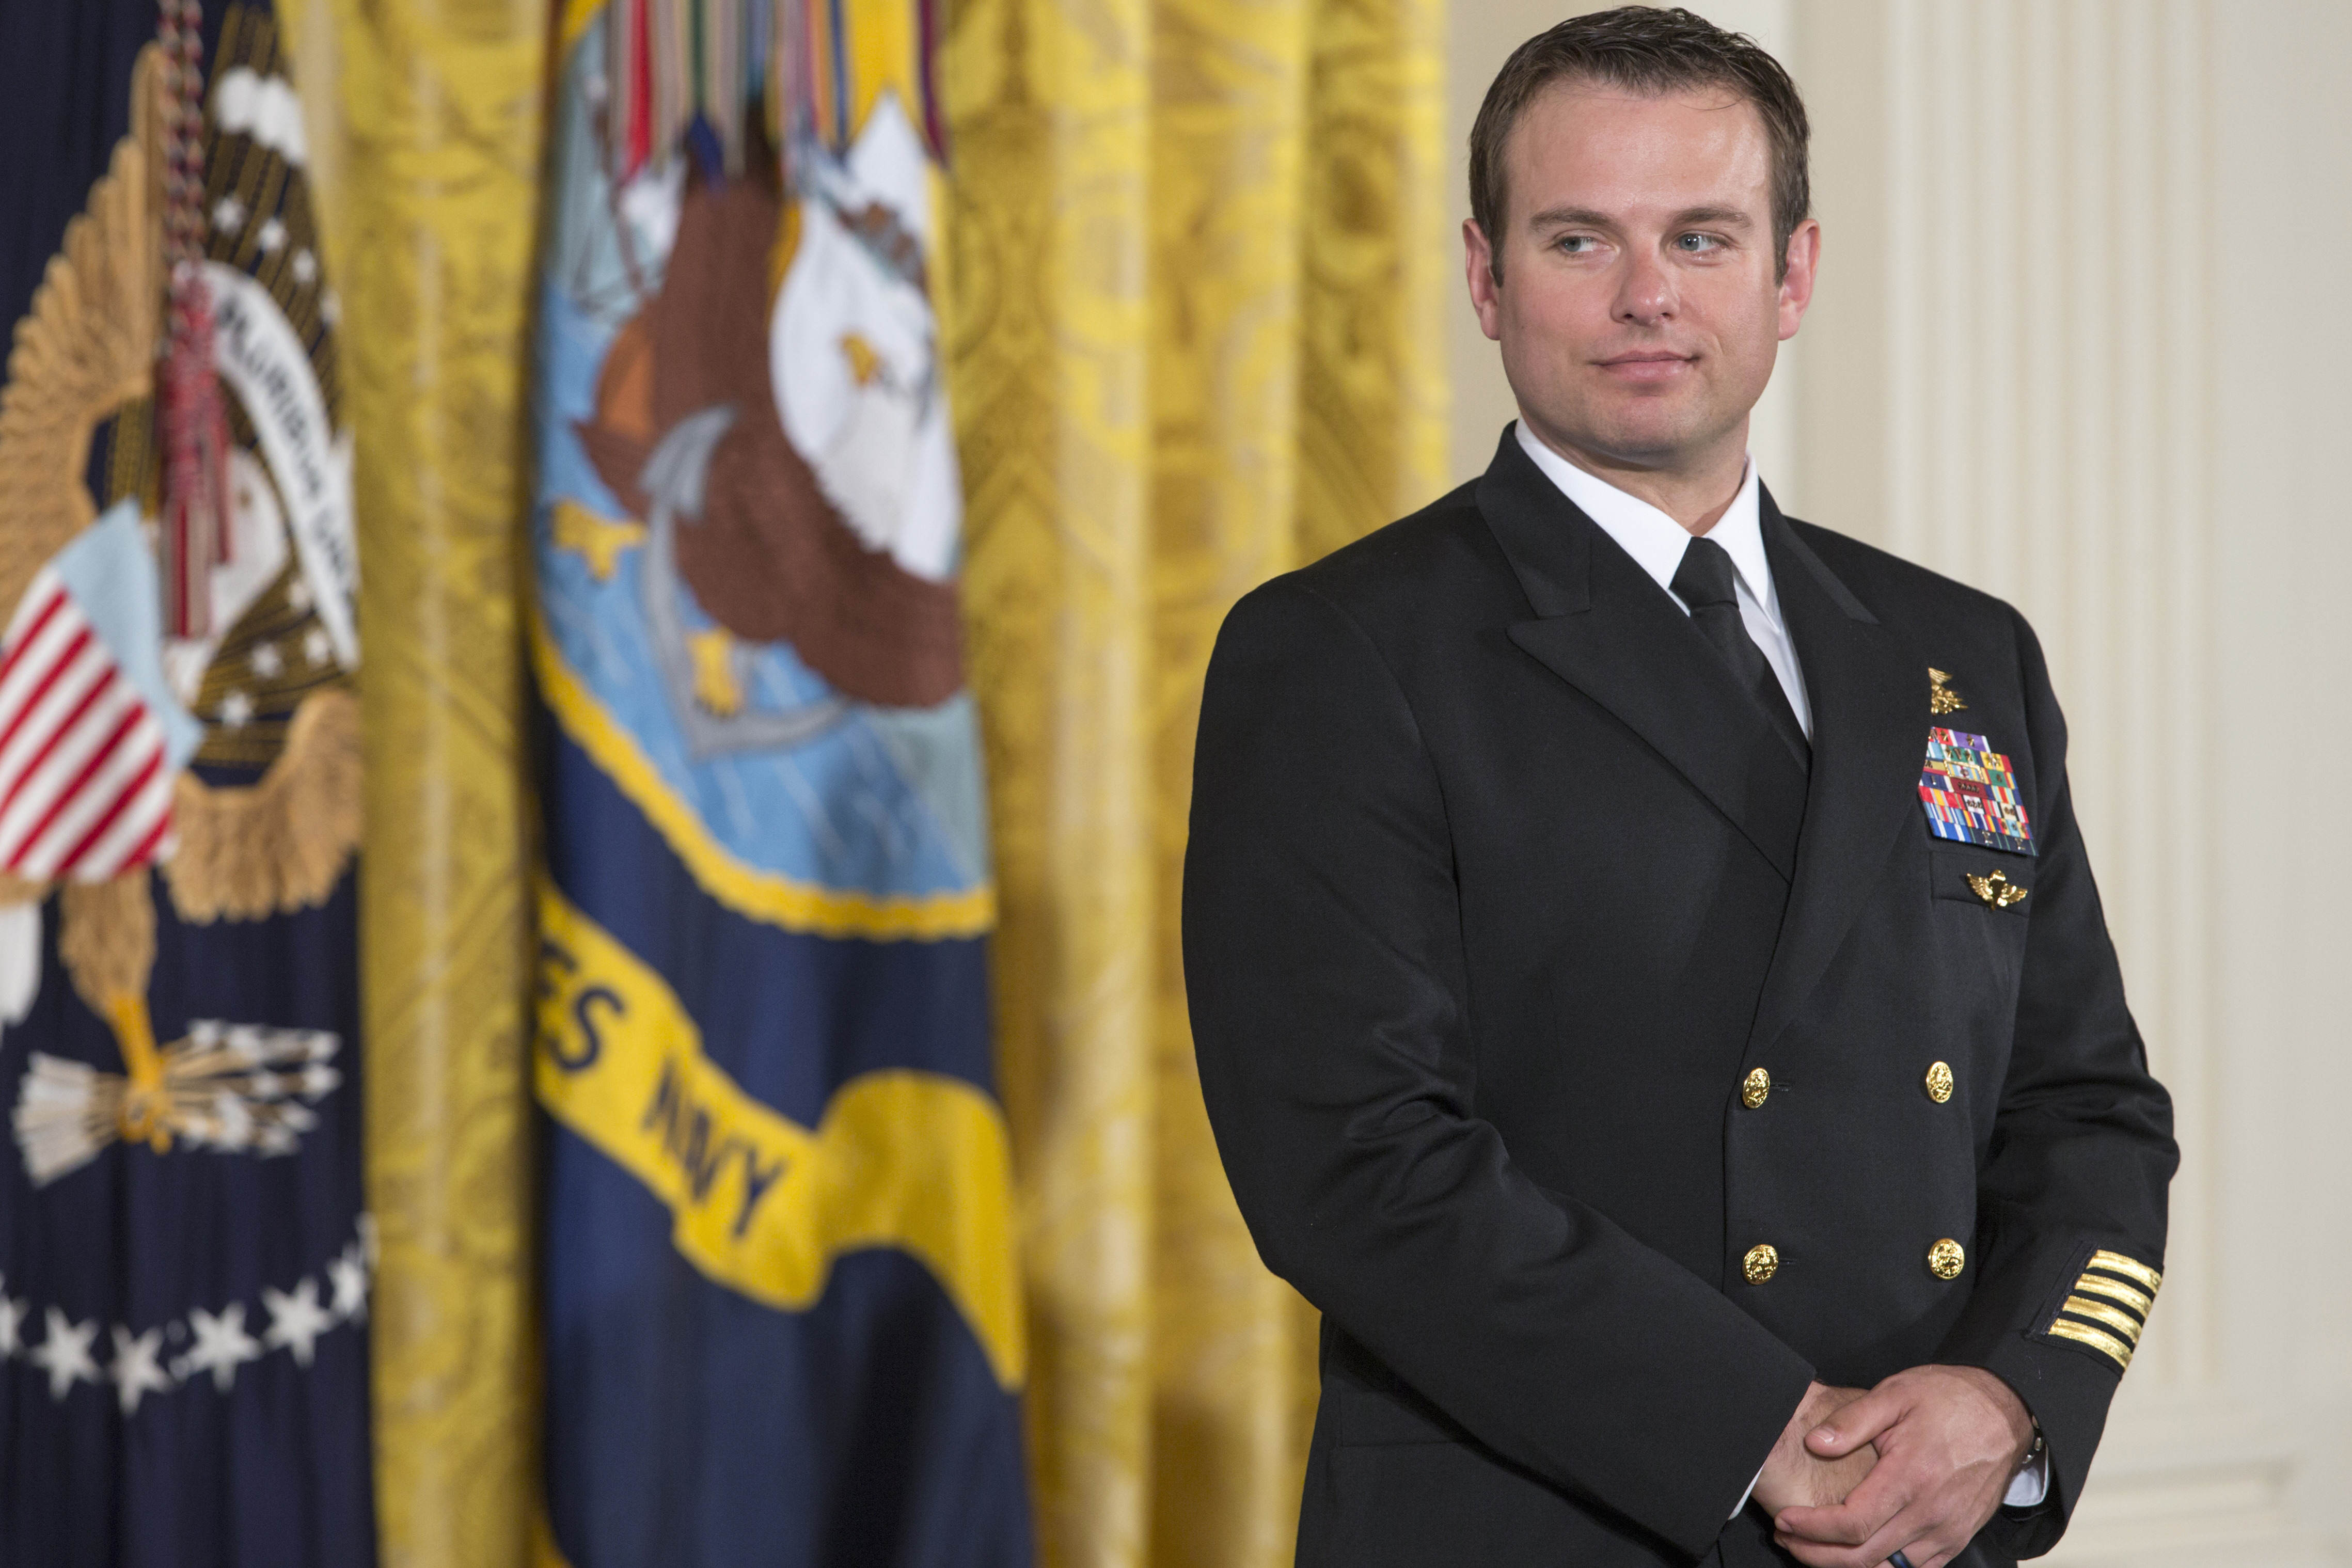 PA 25688767 The Story Of How This Navy Seal Won A Medal Of Honour Is Incredible